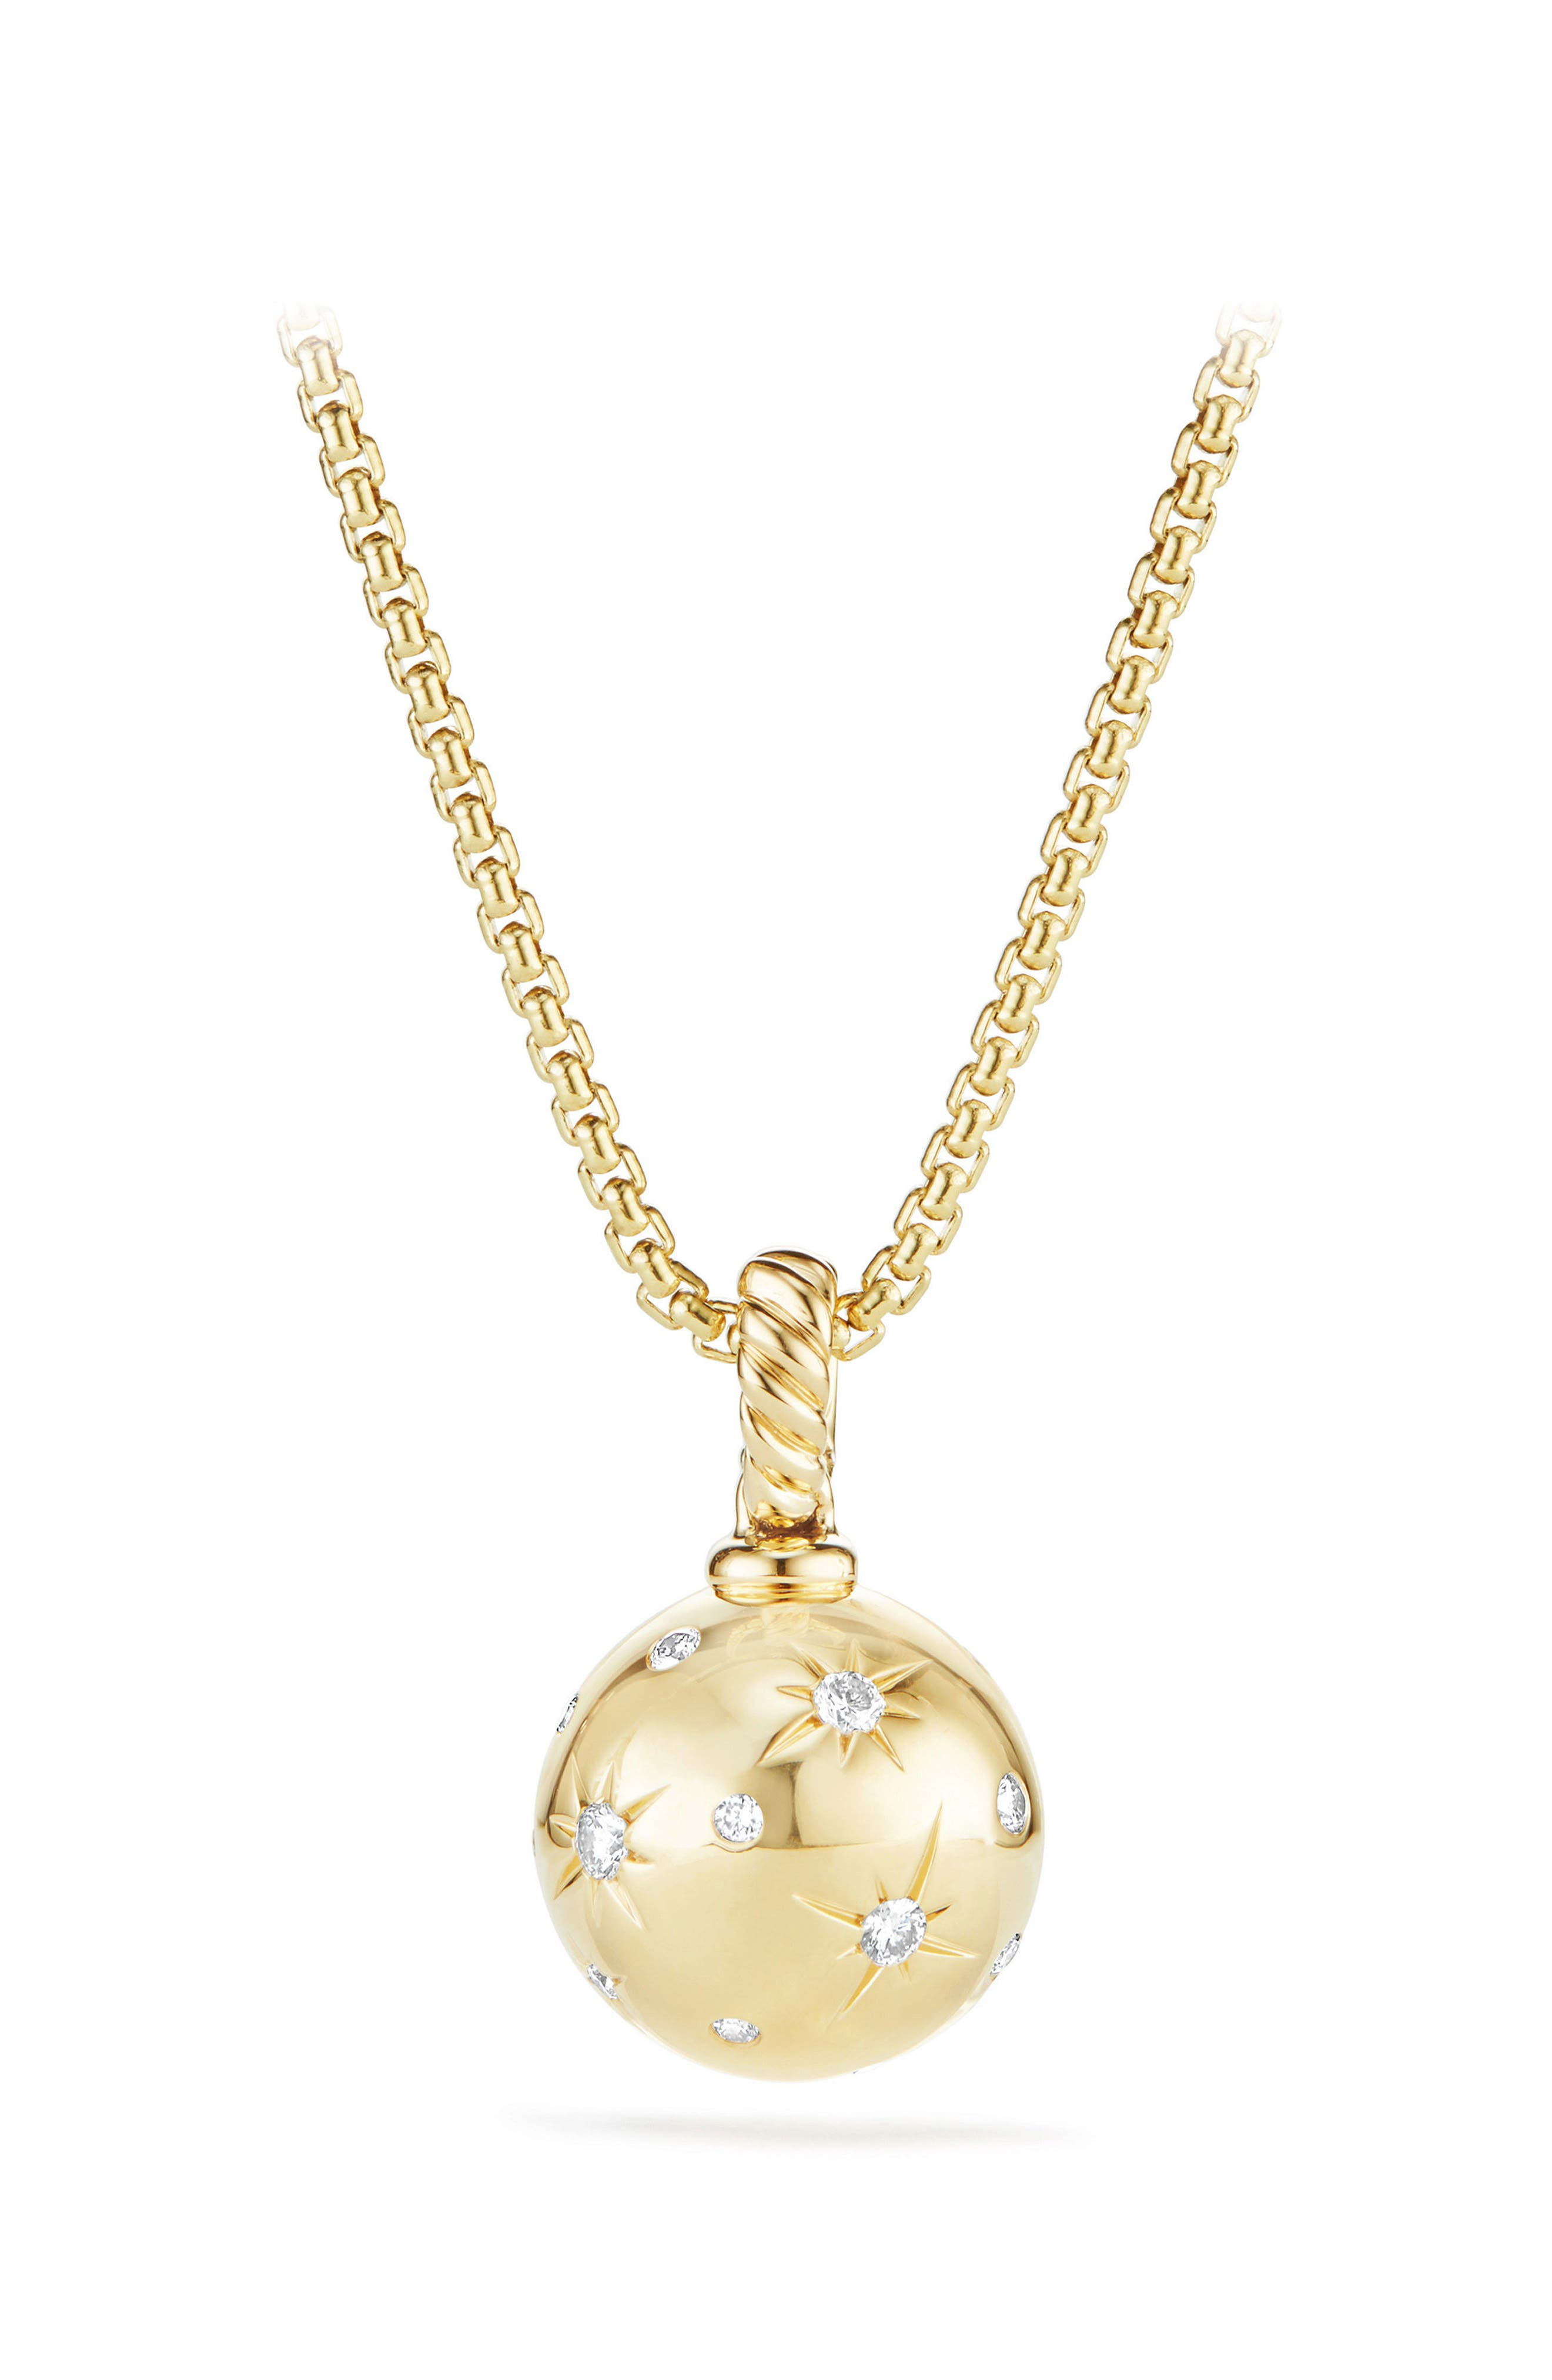 Main Image - David Yurman Solari Pendant with Diamonds in 18K Gold